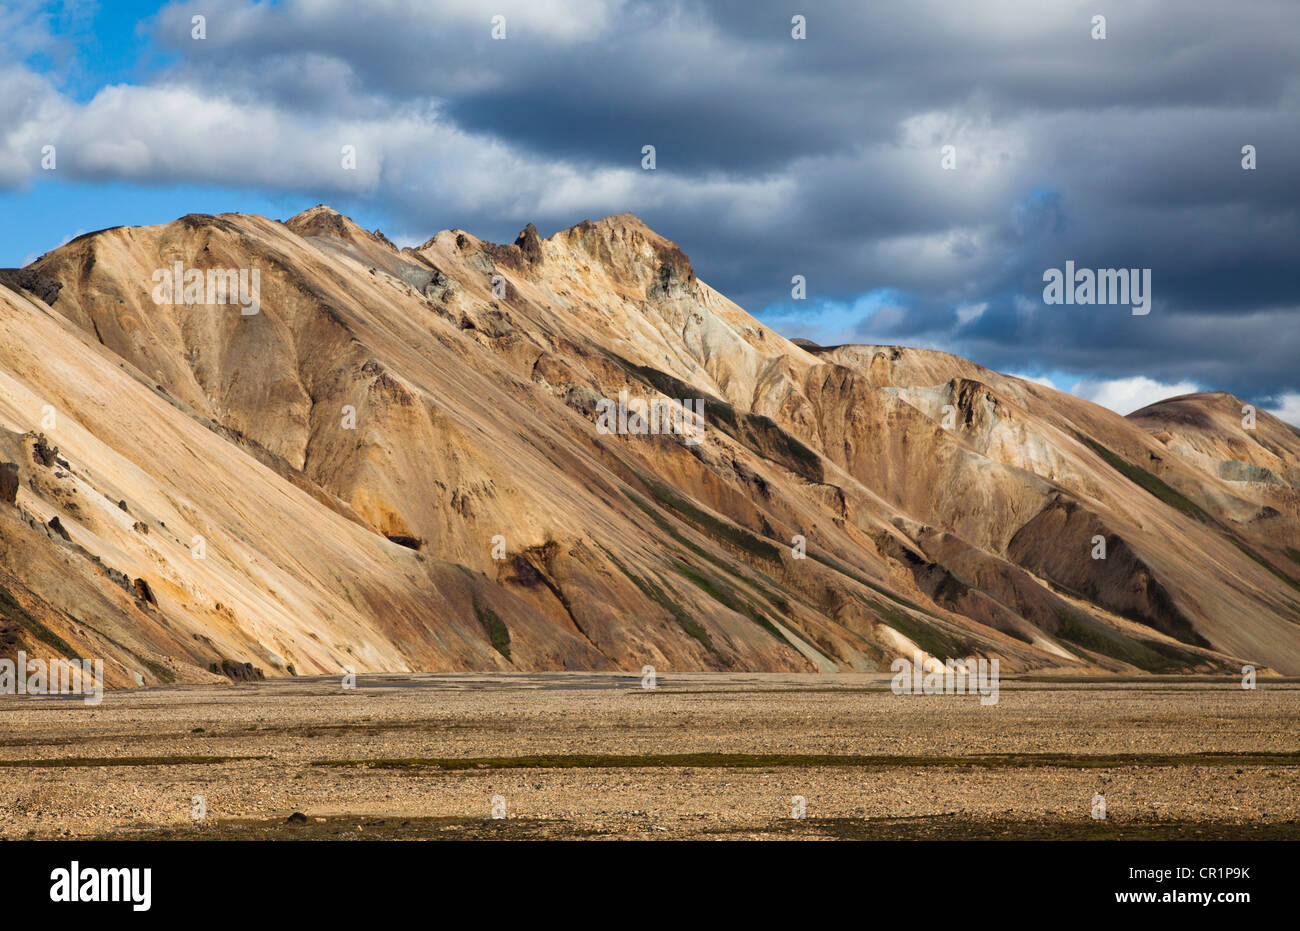 Dry mountains in rural landscape - Stock Image